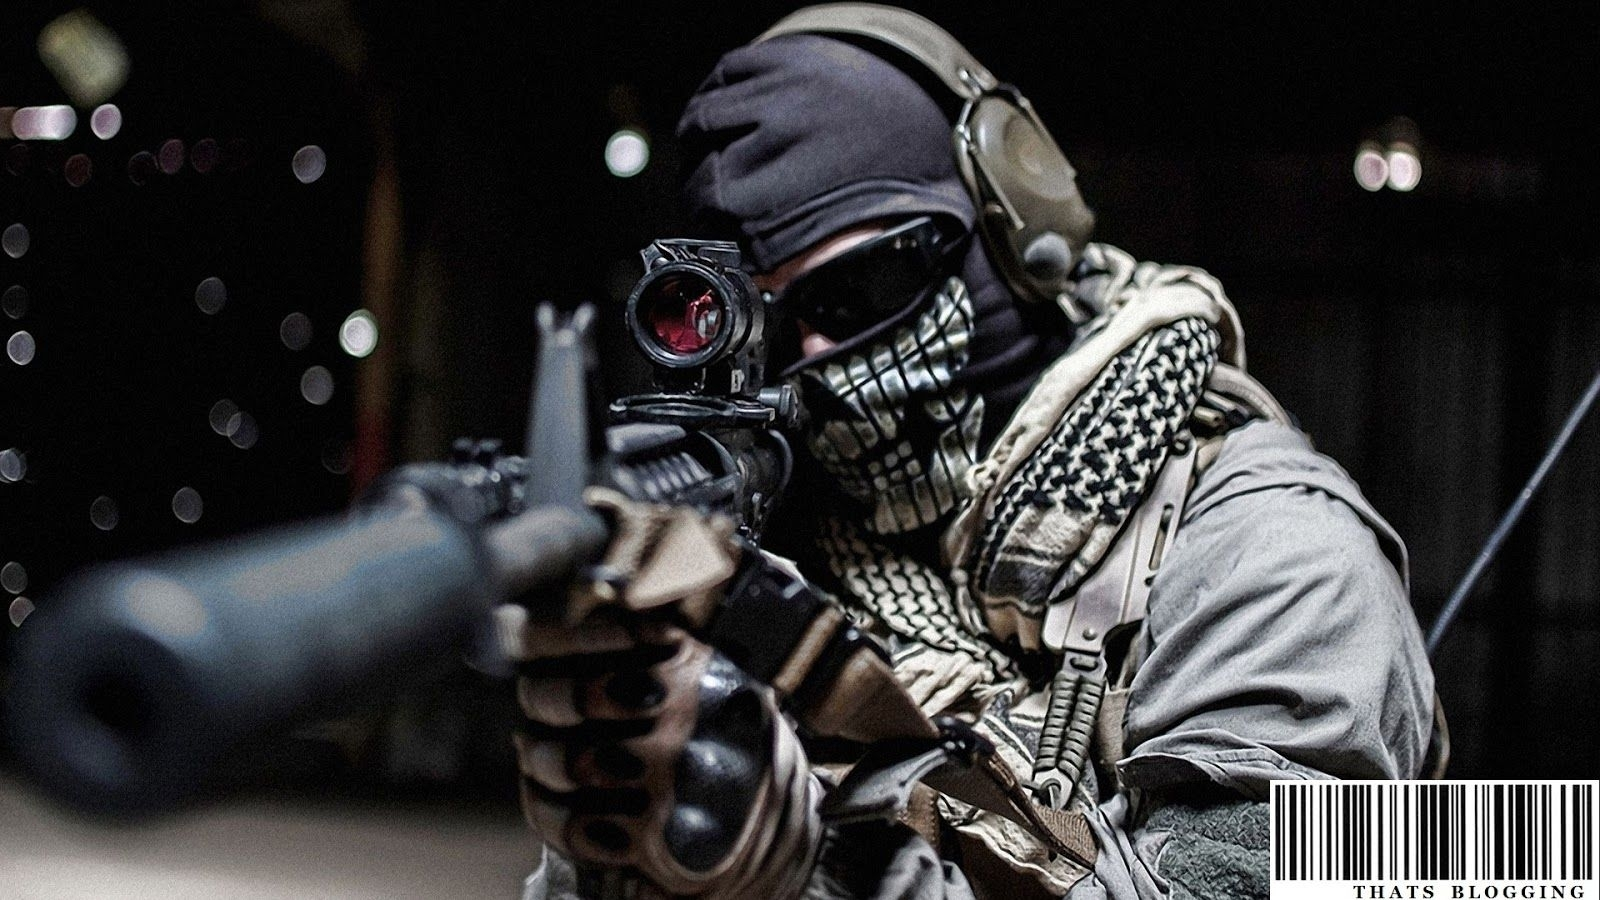 counter strike 1.6: counter strike 1.6 wallpapers hd   best games